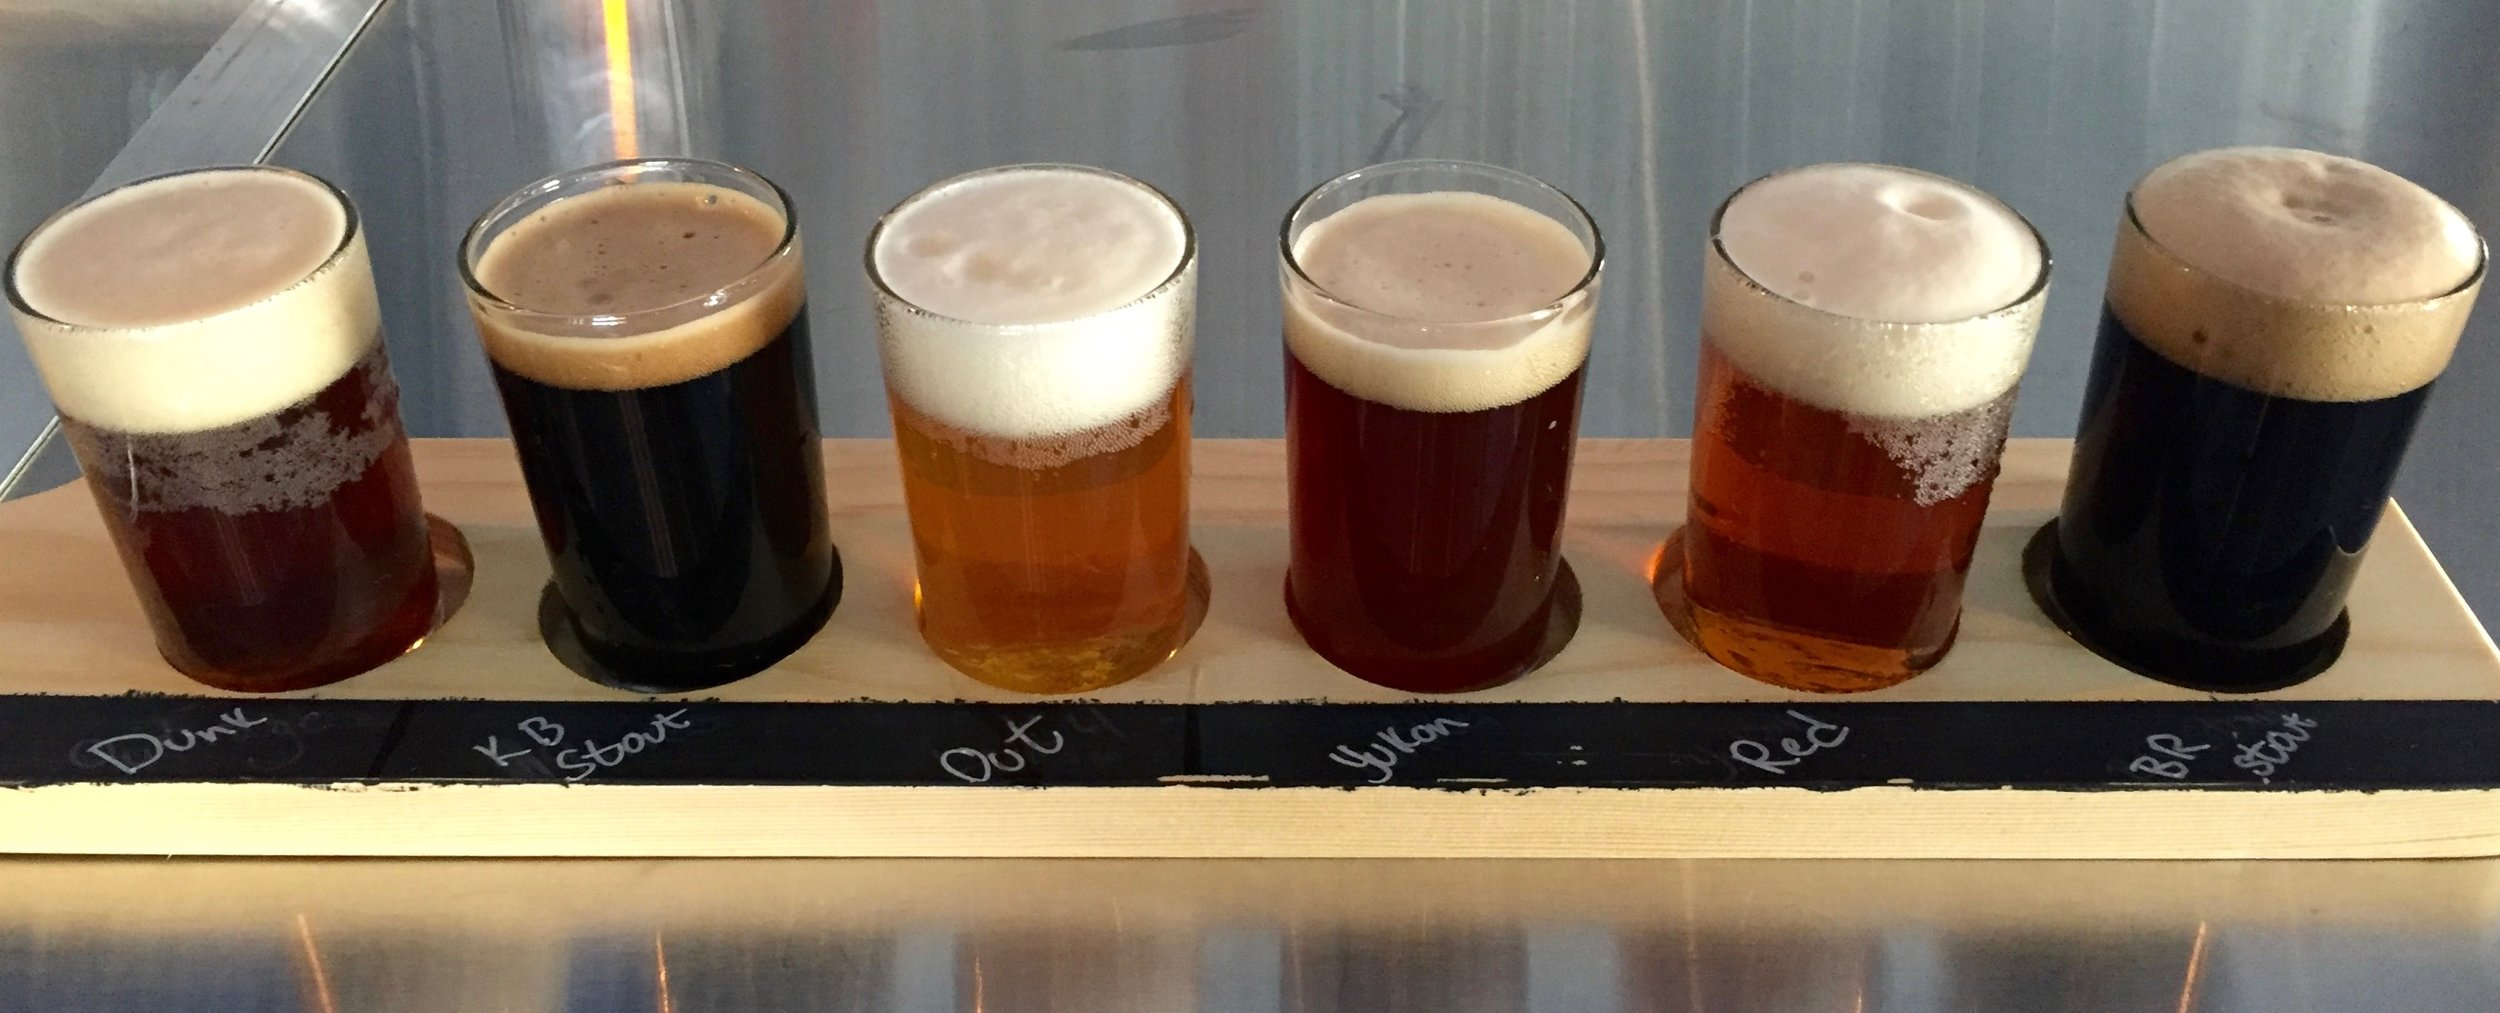 crossroads brewing beer flight